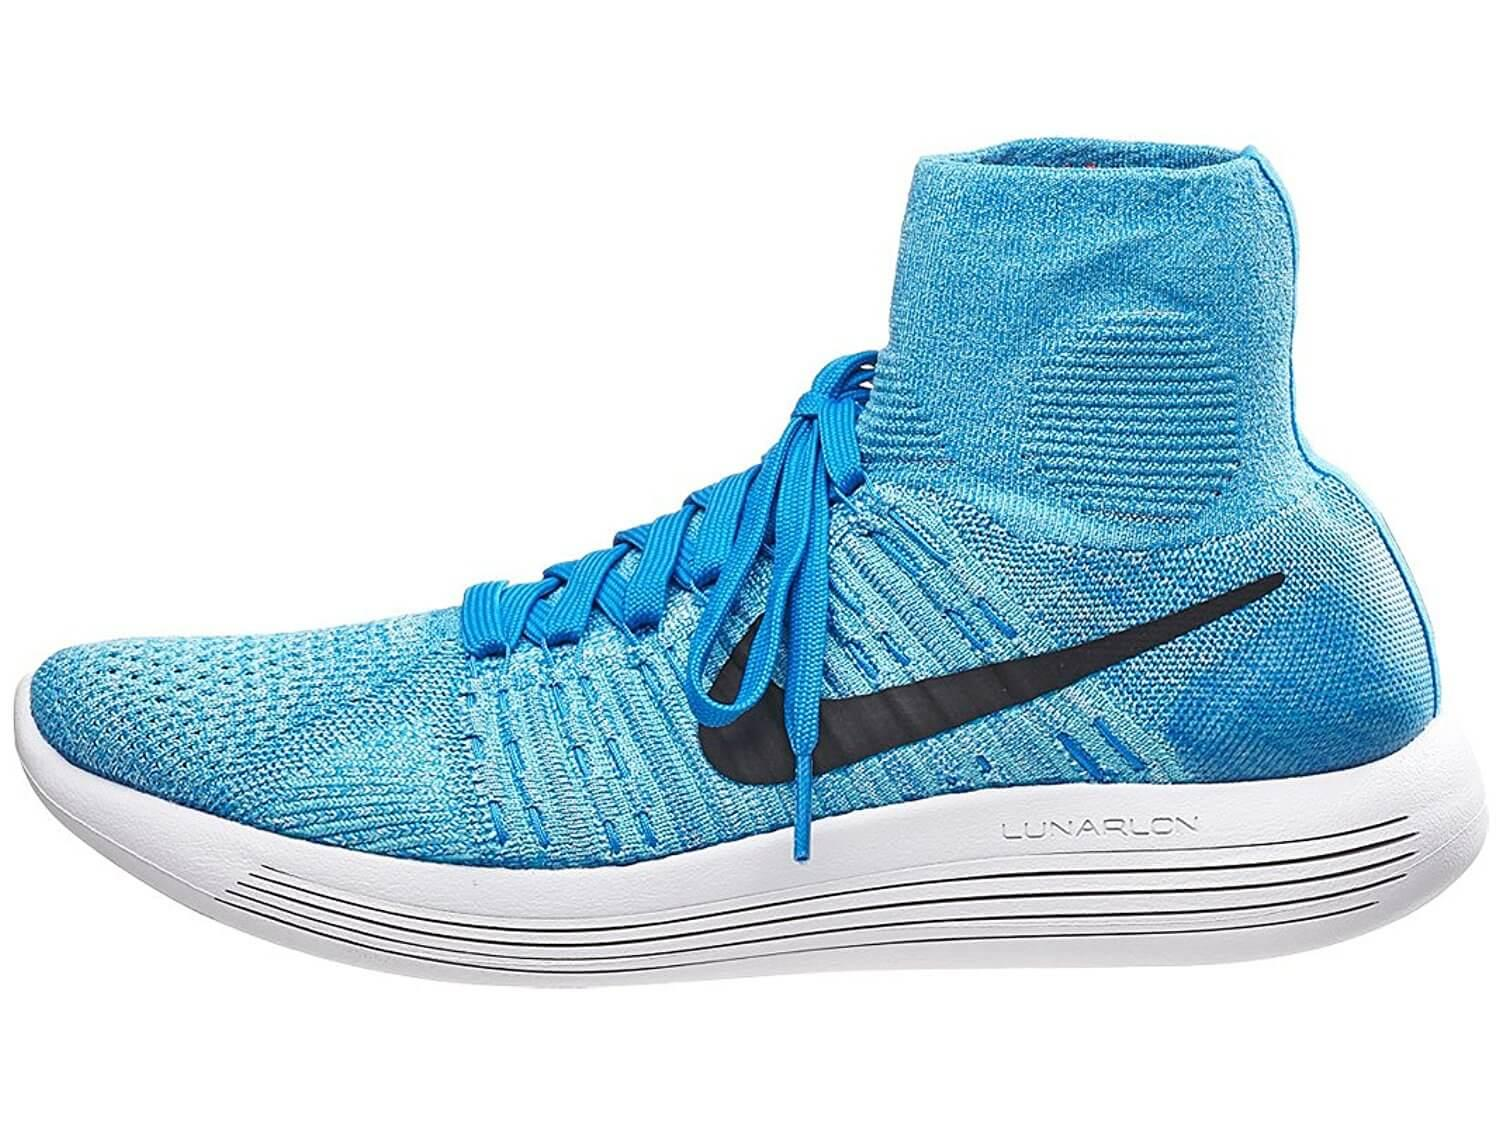 free shipping c4961 72acb The higher ankle covering offers more style options for the Nike LunarEpic  Flyknit.